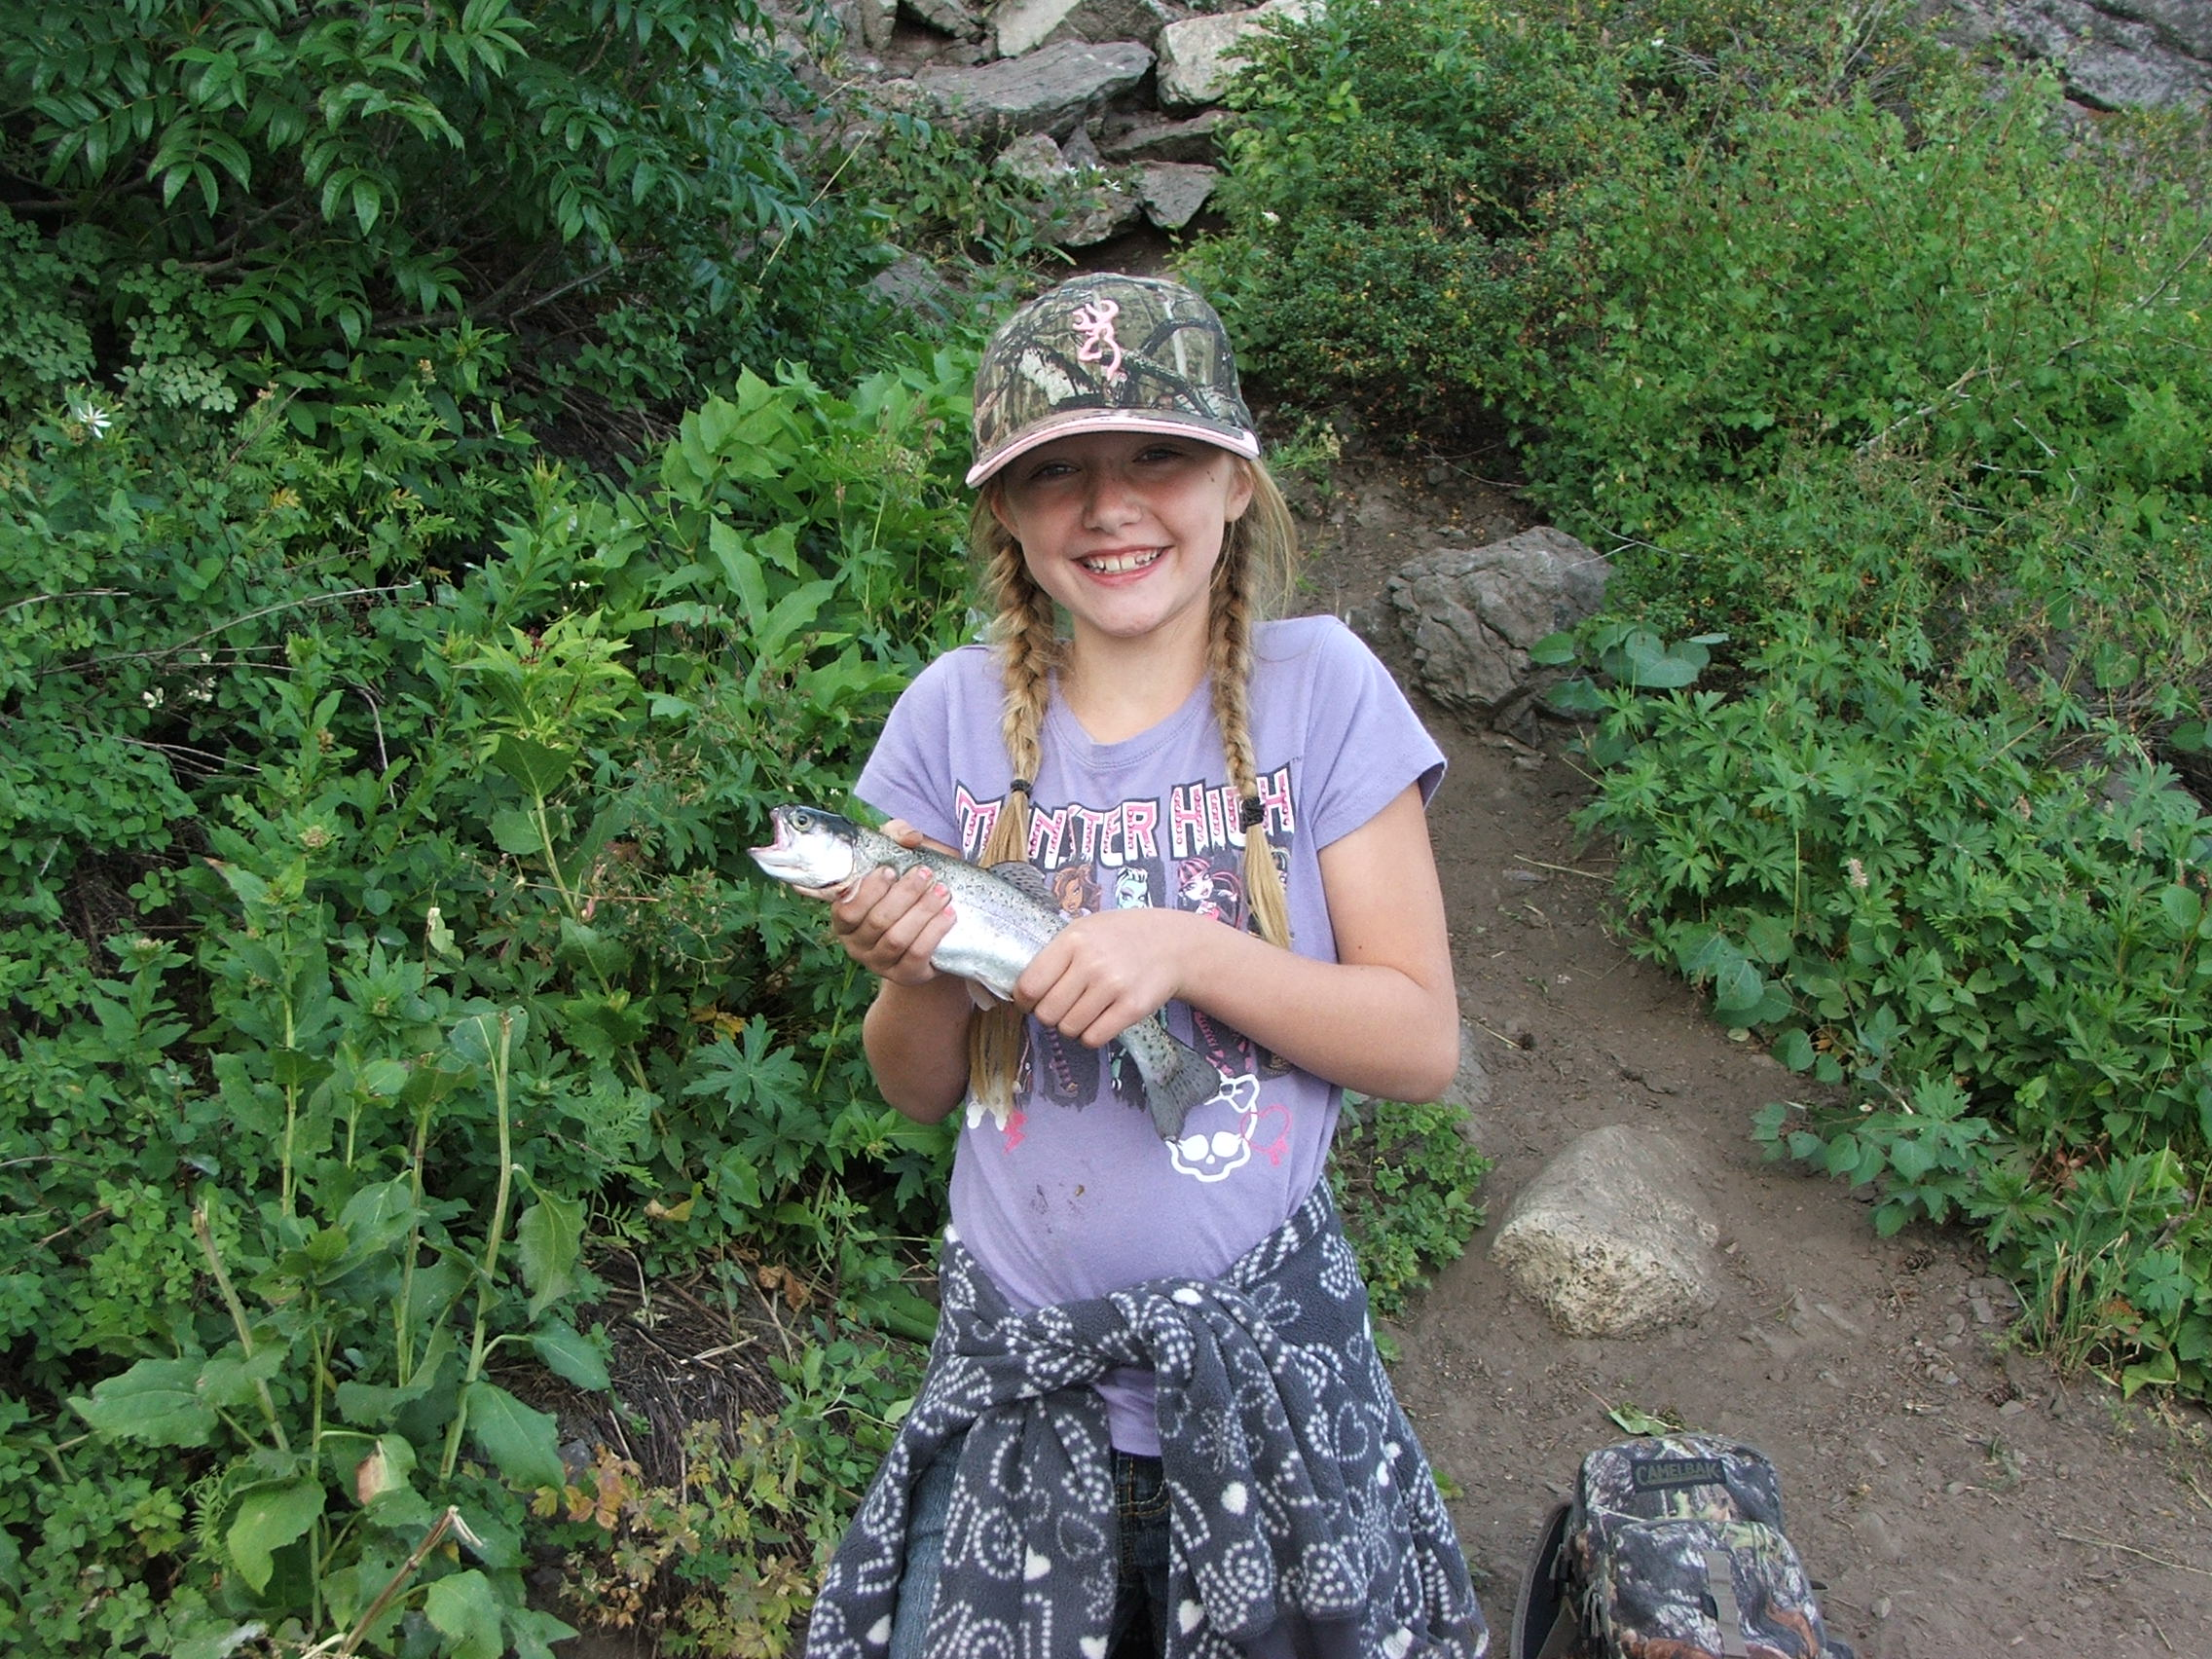 Fishing tony grove lake bearsbutt stories ramblings kenzie with her fish publicscrutiny Images